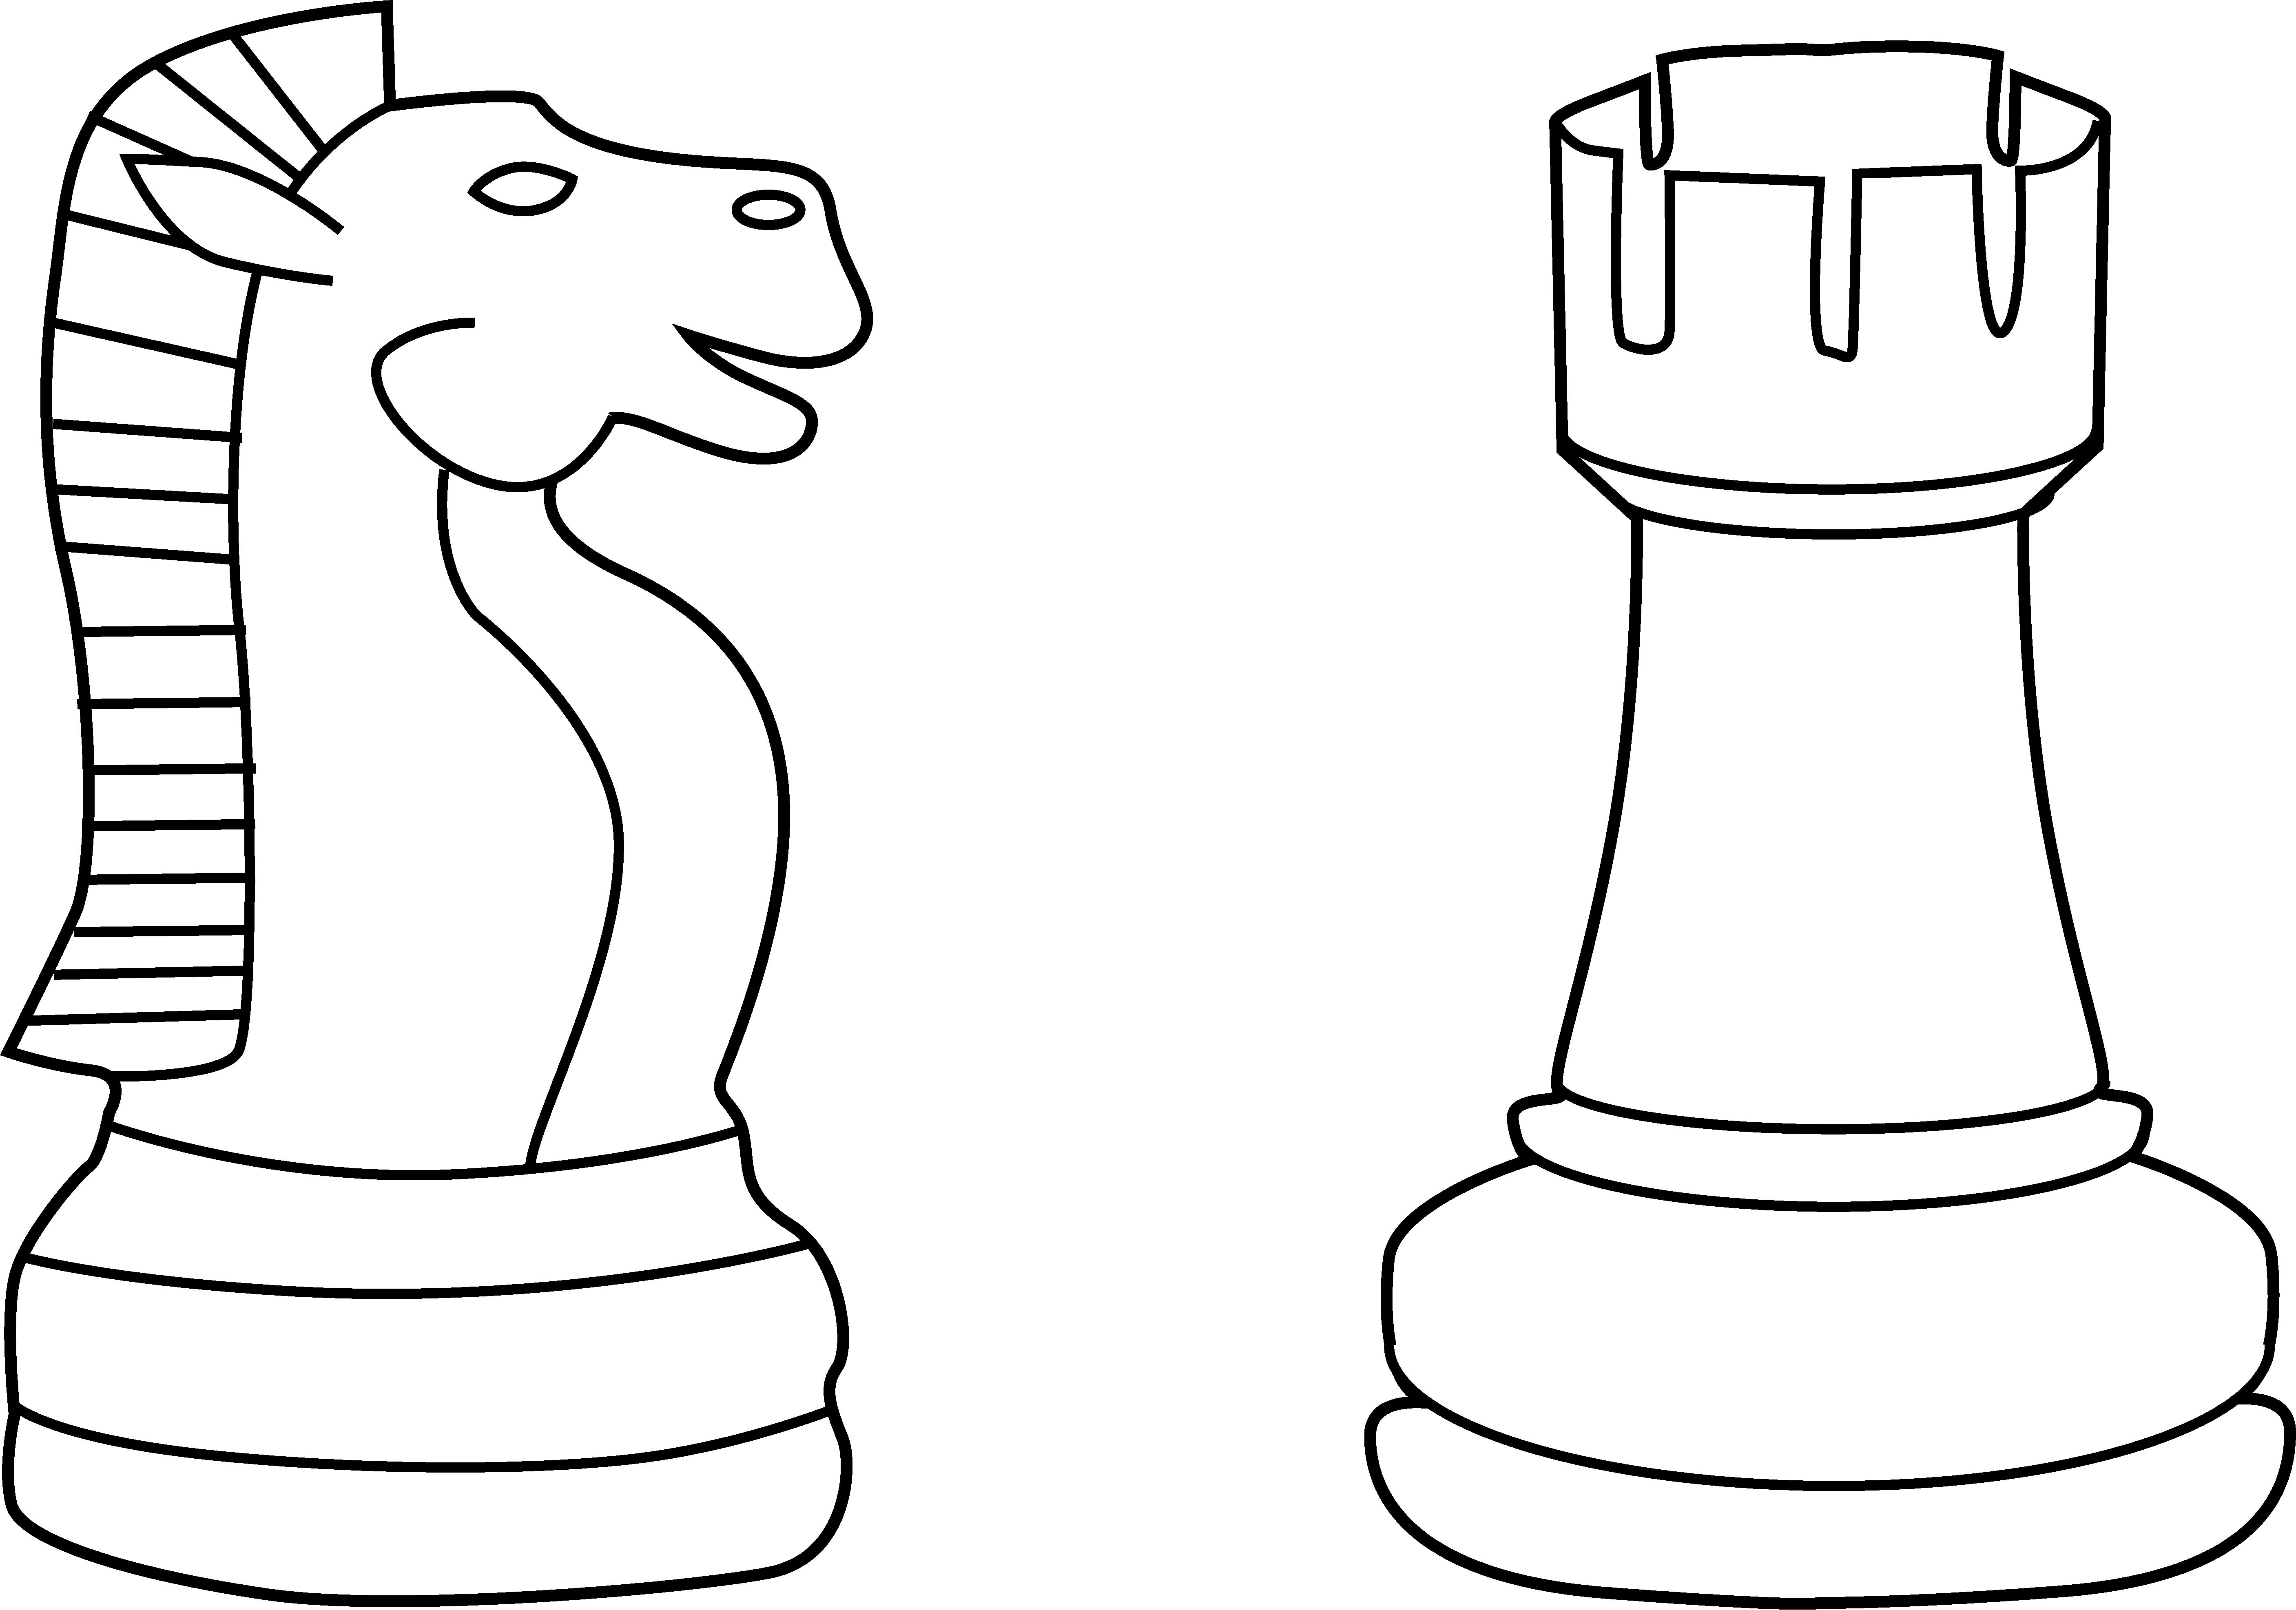 Two Chess Pieces Line Art.